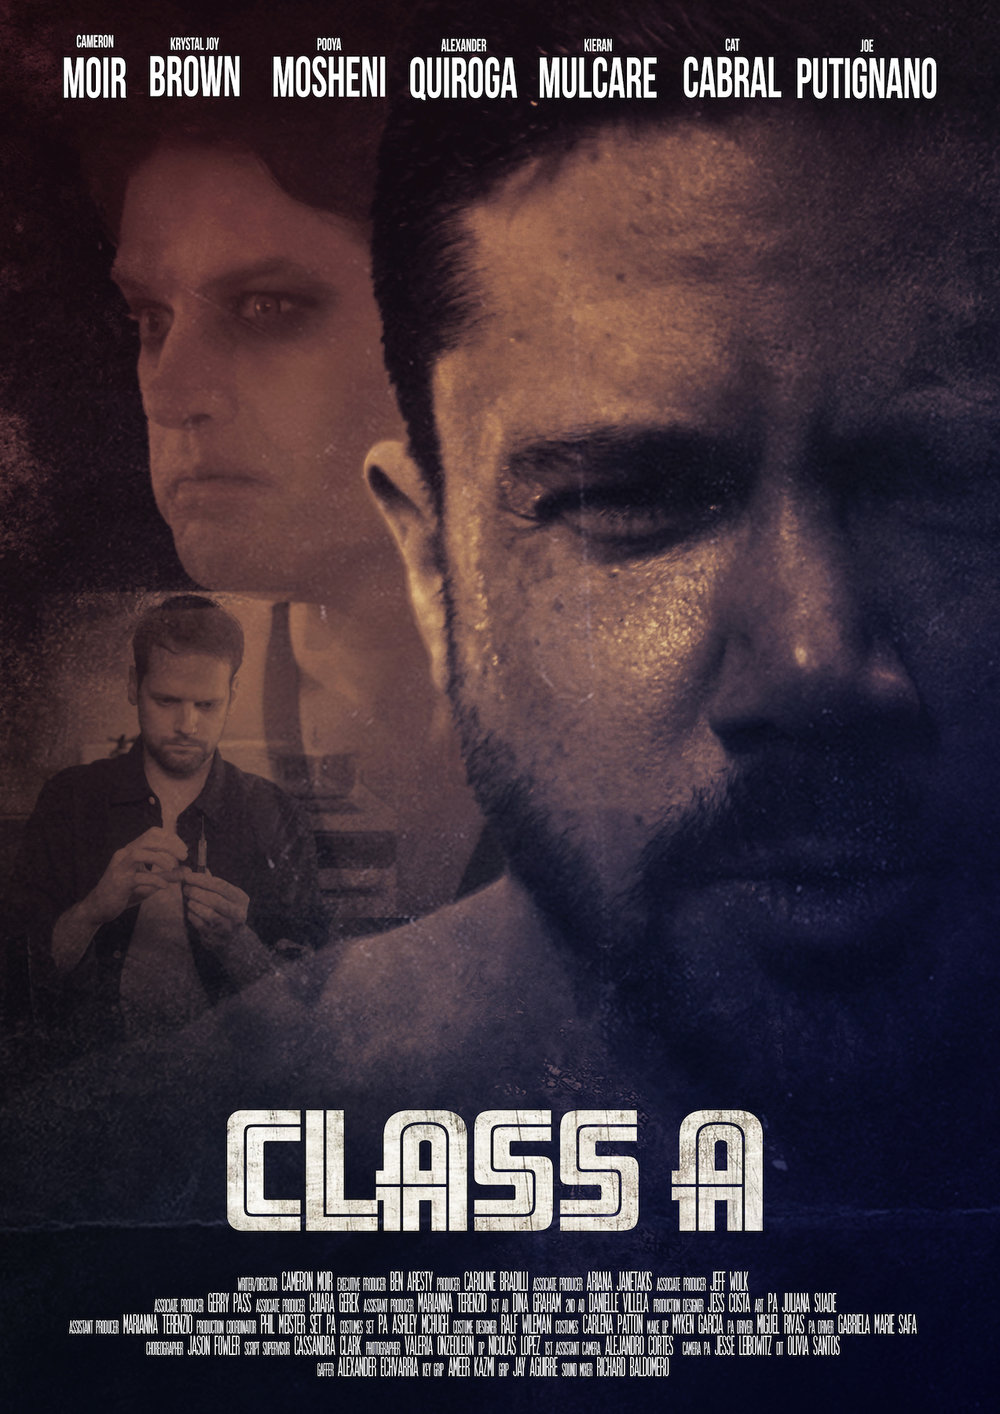 SHORT SYNOPSIS: CLASS A, follows three LGBTQ, addicts who battle their chosen drug…personified in the flesh. - LONGER SYNOPSISMind-altering and terrorizing, CLASS A, is set in modern-day New York City but the ultimate setting is another world in which our LGBTQ addicts, Jenny, Dan, and Brad enter when interacting with their drug. Focusing on three drugs, Coke, Heroin and Crystal Meth. Each drug has its own landscape in which the addict enters and cannot escape until the drug leaves them. Heroin, being a vast black eternal comb, Coke,  a stark, white, fast moving space and Crystal Meth, a red, steamy dungeon.